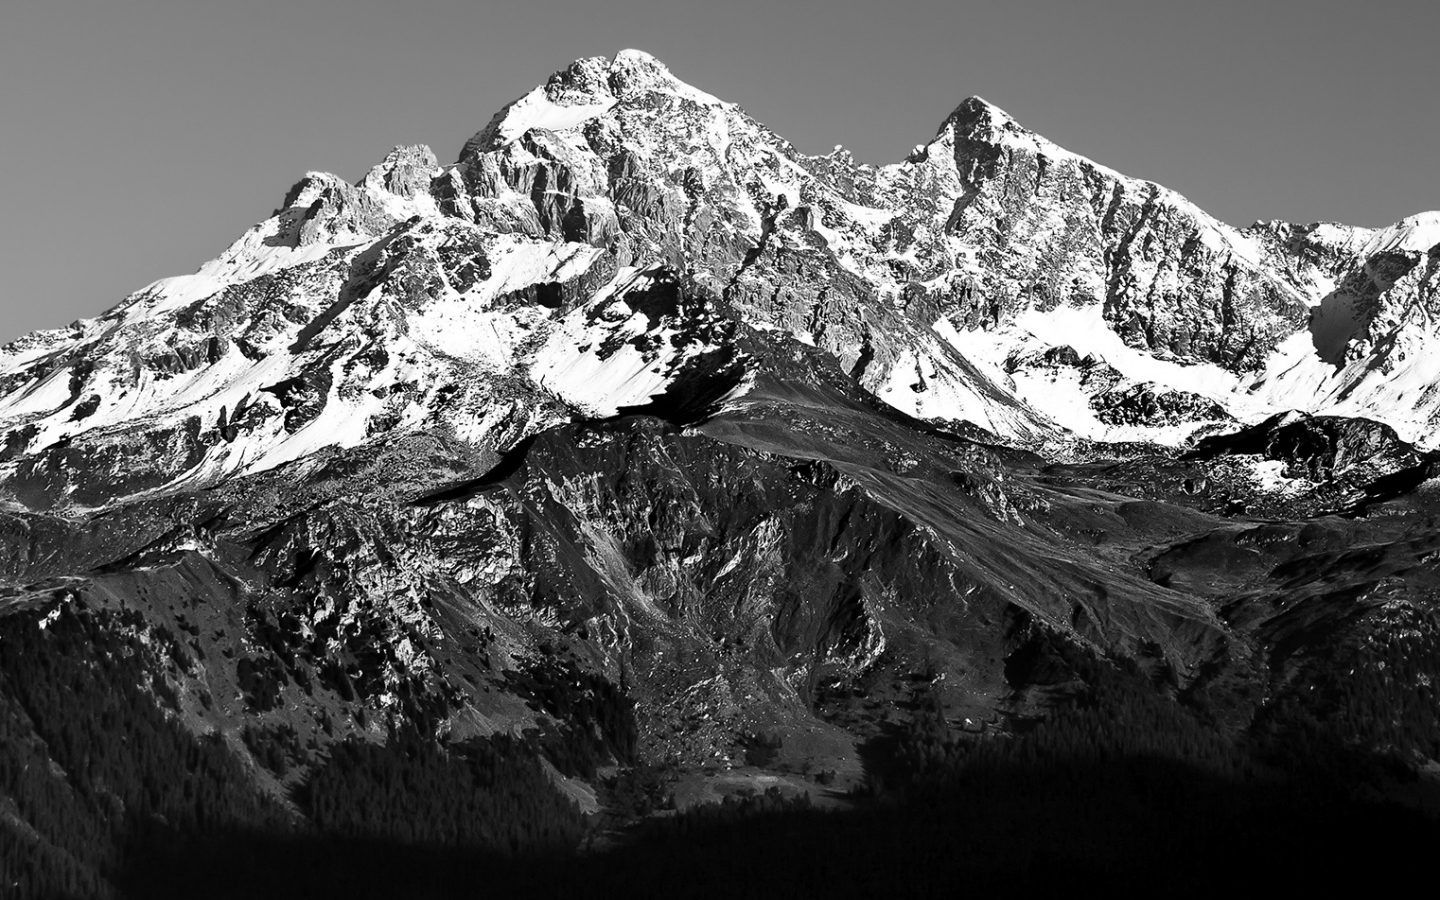 Alps Black And White Wallpaperswebs Black And White Black Wallpaper